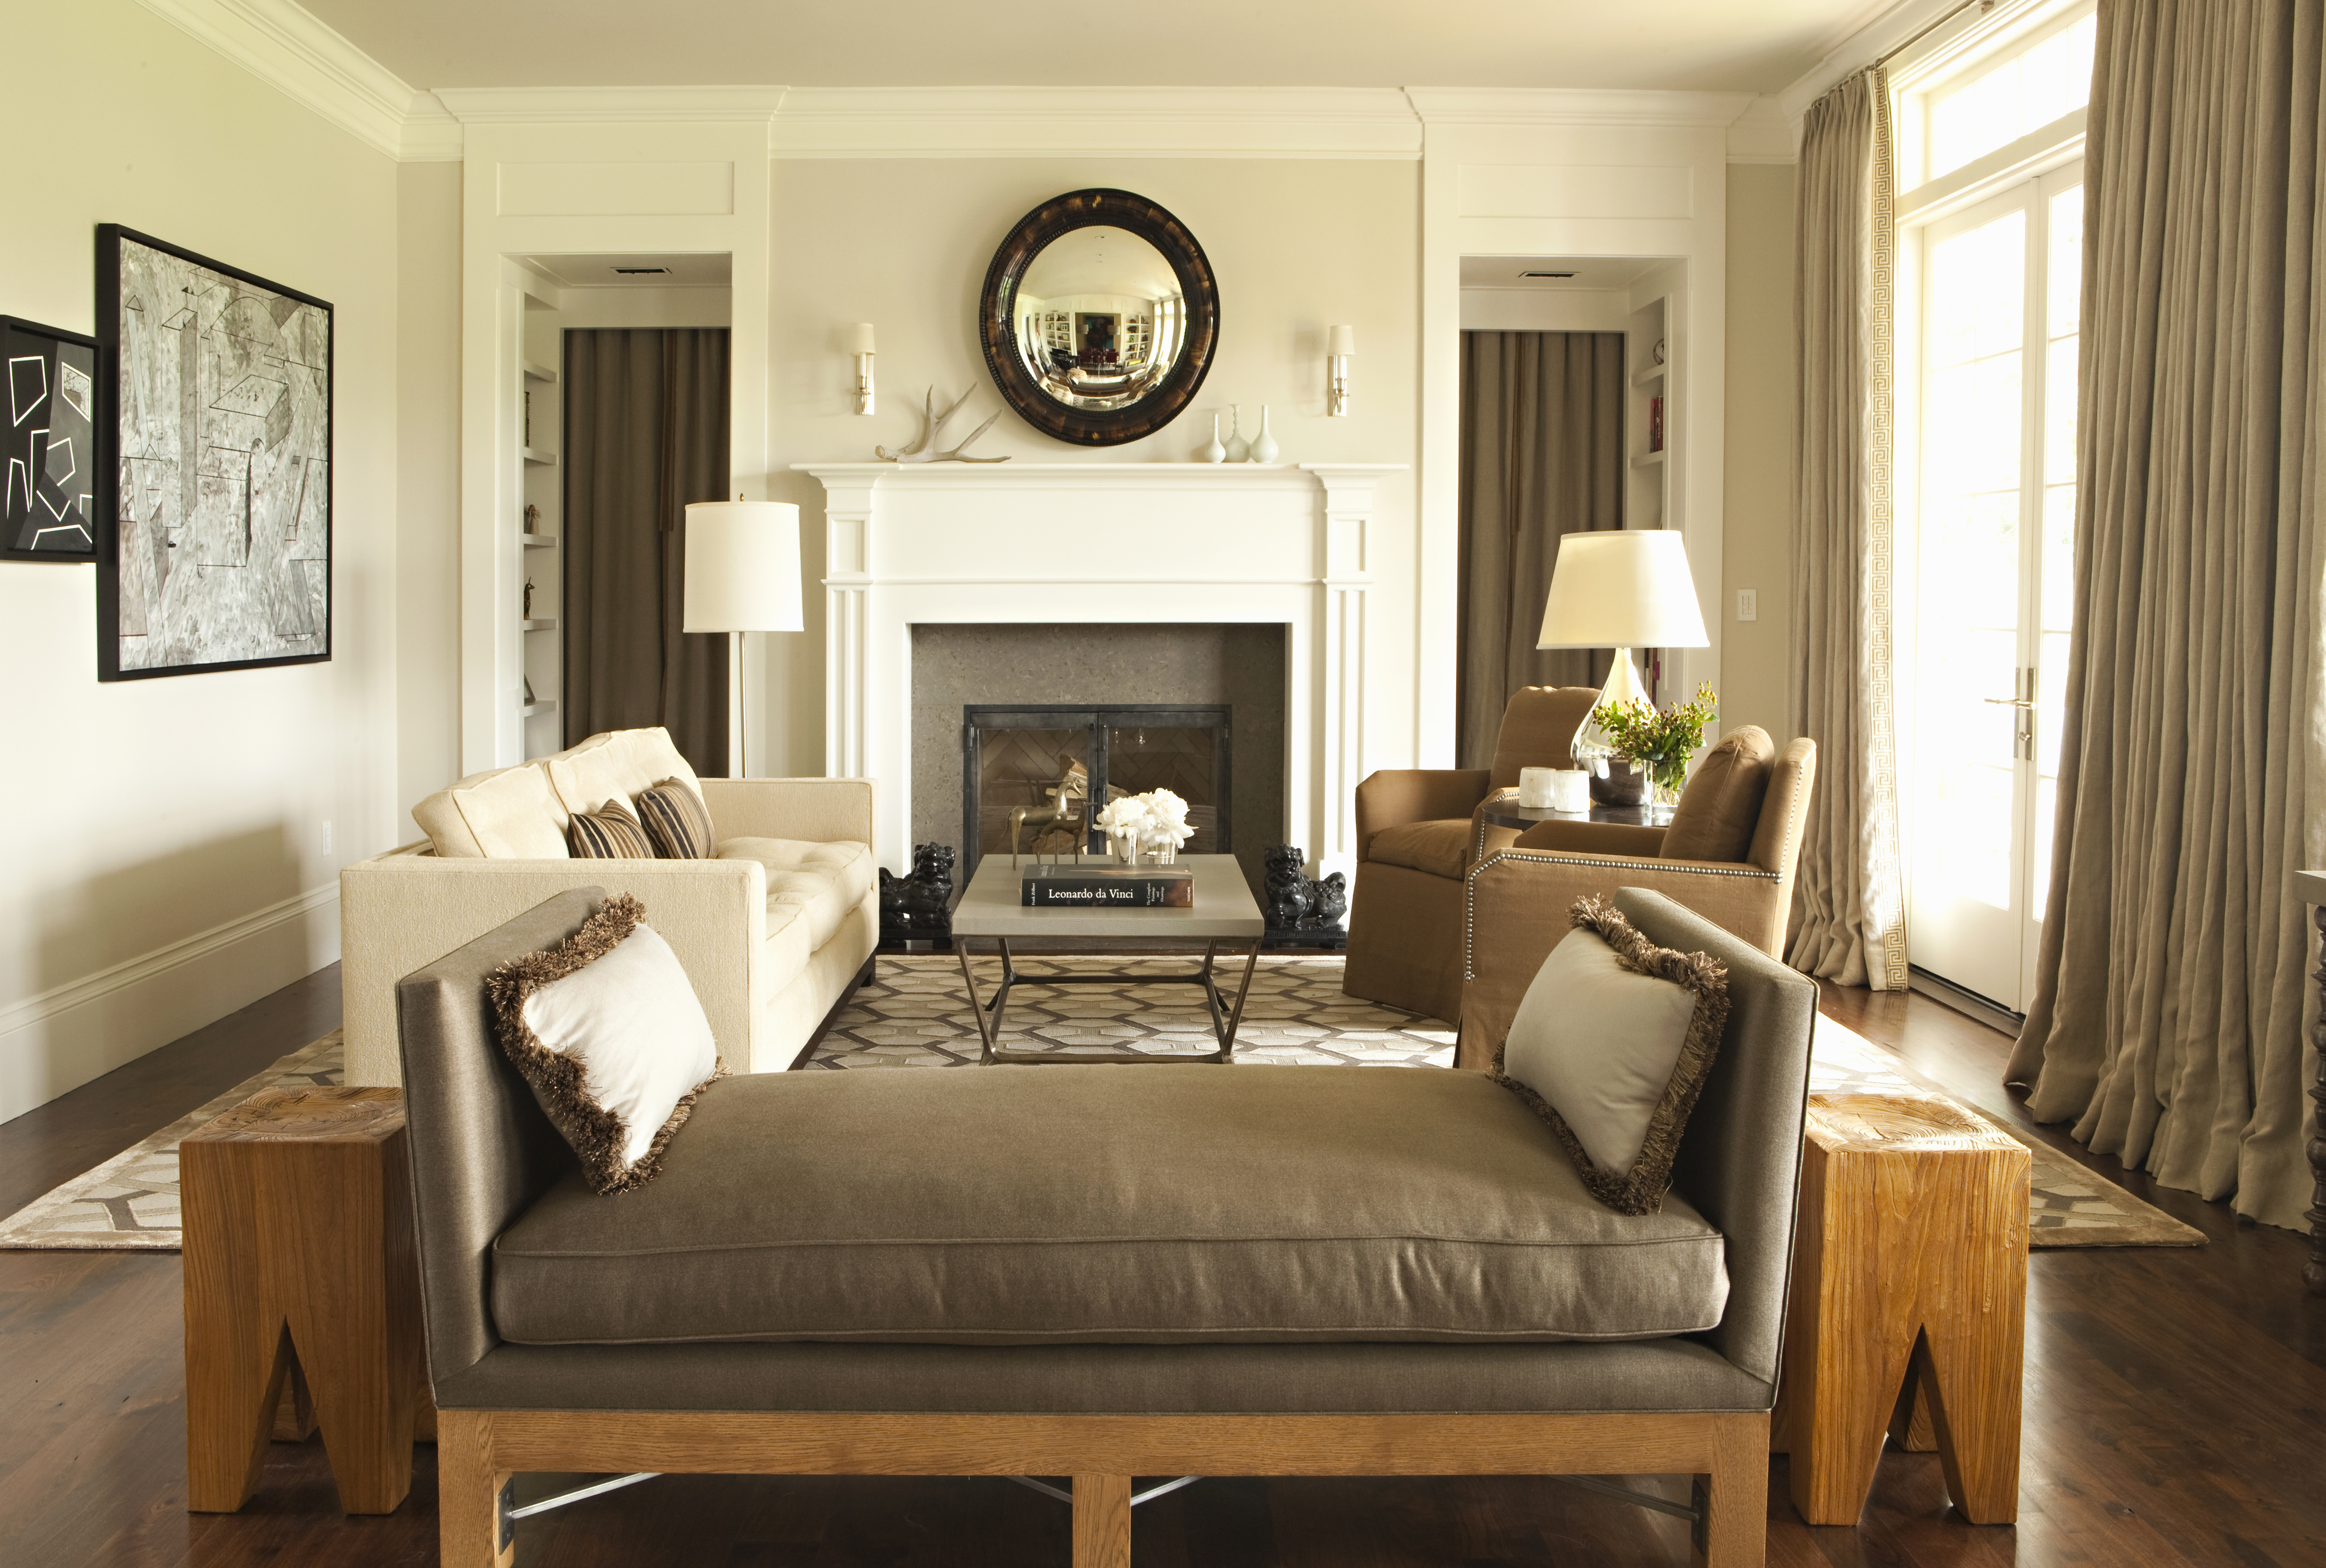 A living area with couches, arm chairs, a fireplace, works of art, a mirror, lamps, and an area rug. The walls are painted with a light grey beige color.